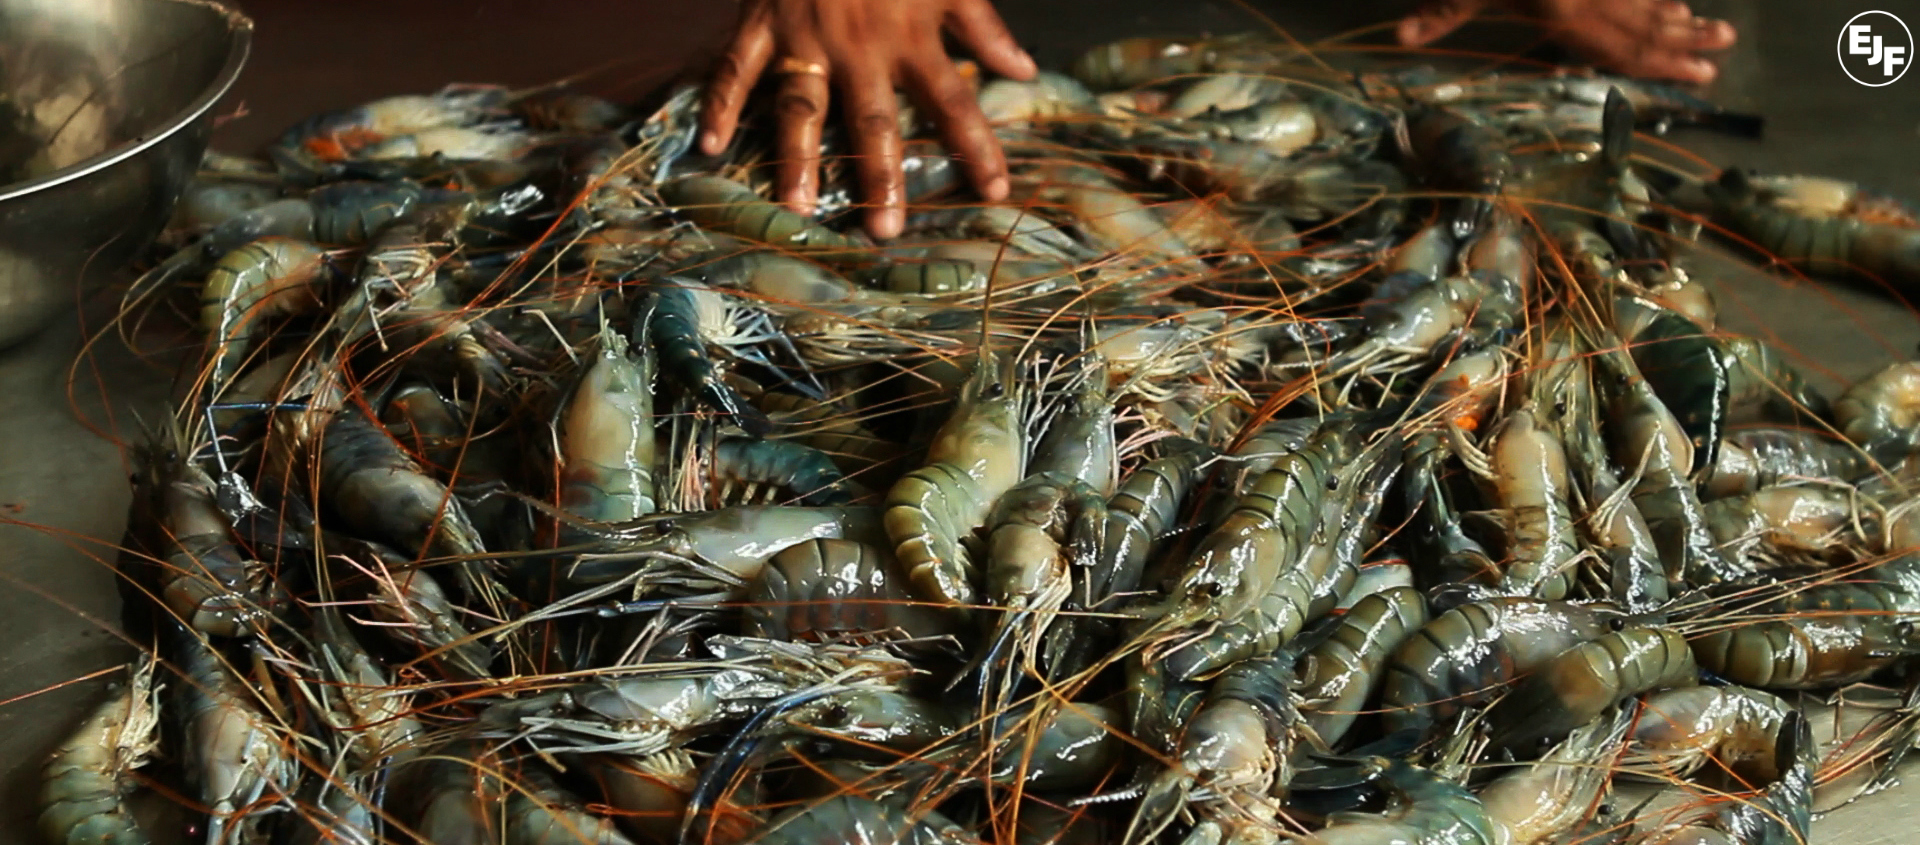 Where does your shrimp come from?